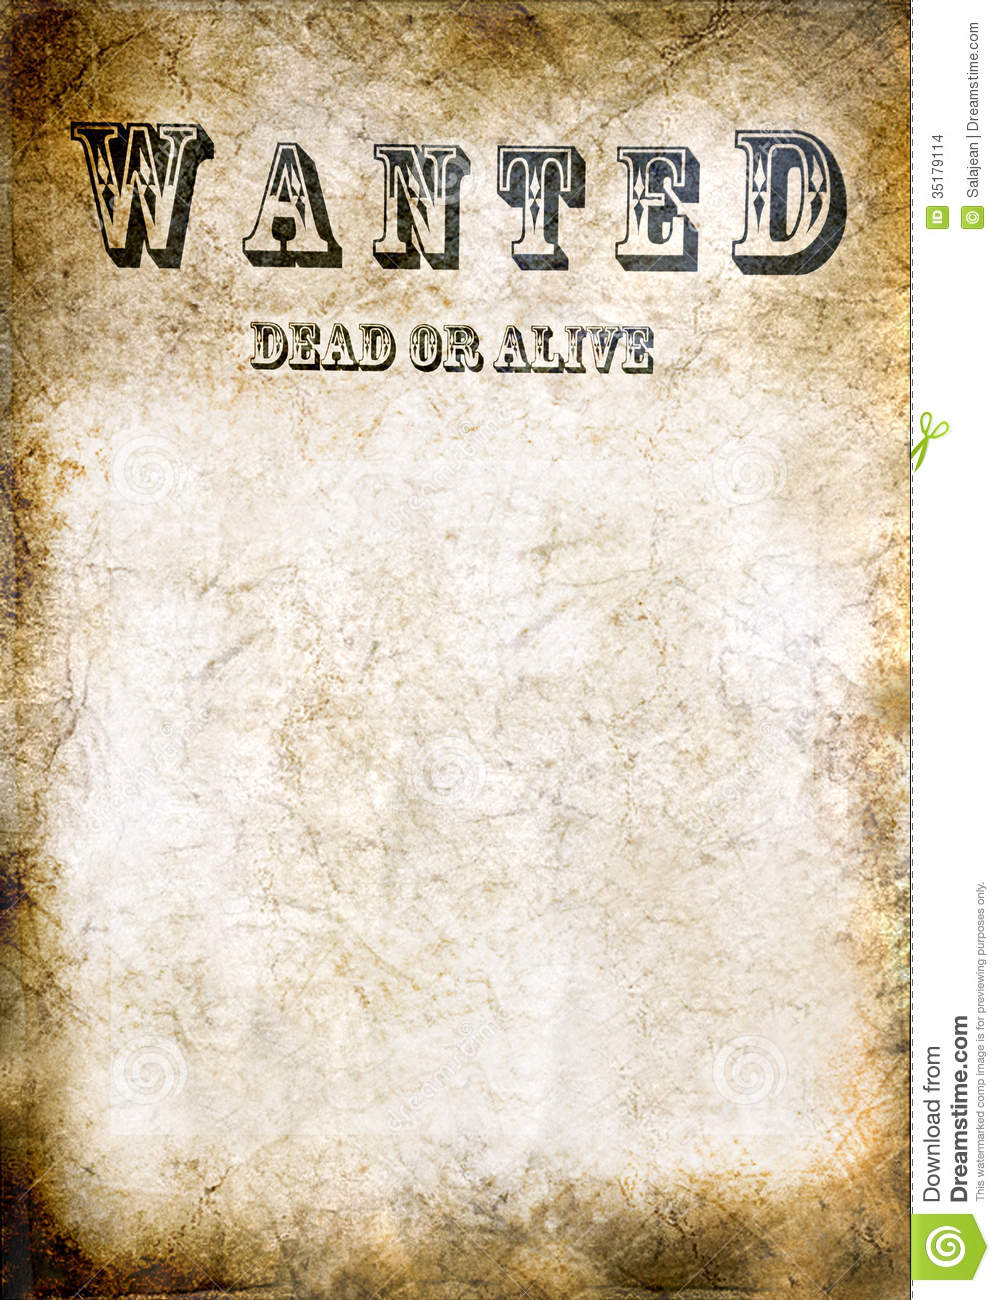 Wanted dead or alive шаблон